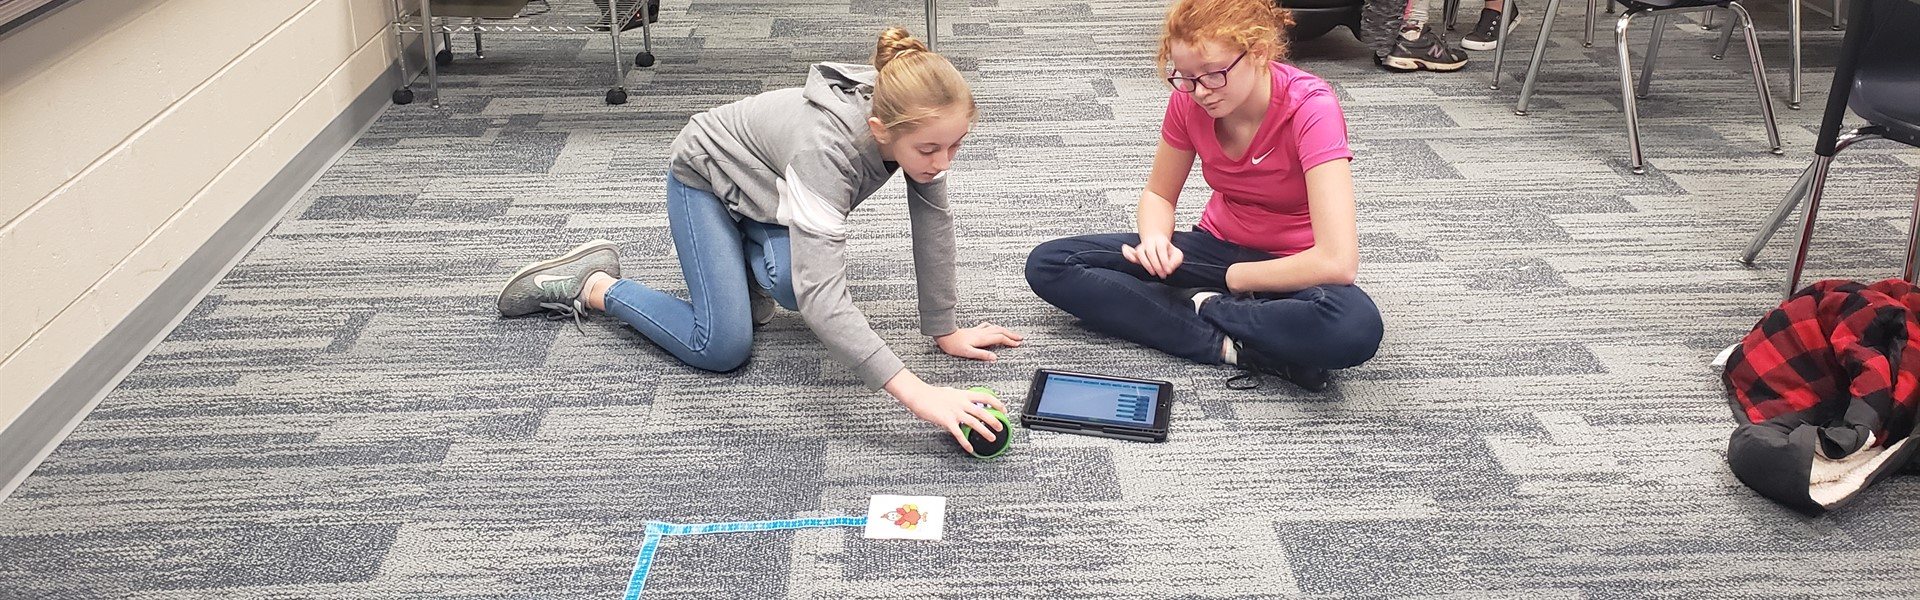 Sphero GAP Workshop